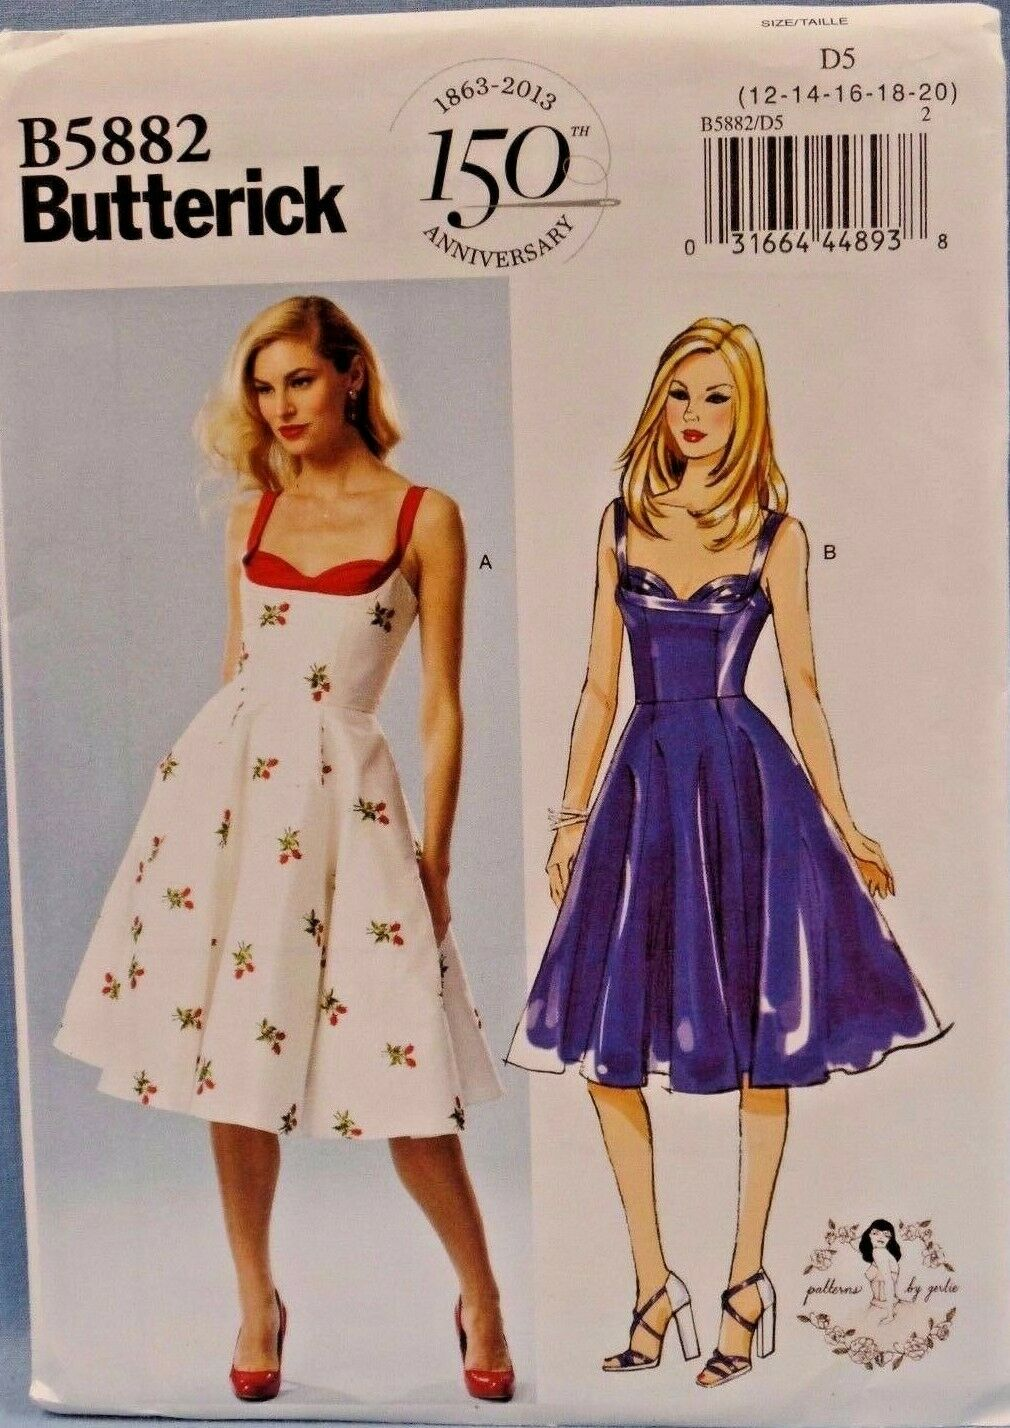 BUTTERICK PATTERNS B5882 Misses Dress Sewing Templates Size D5